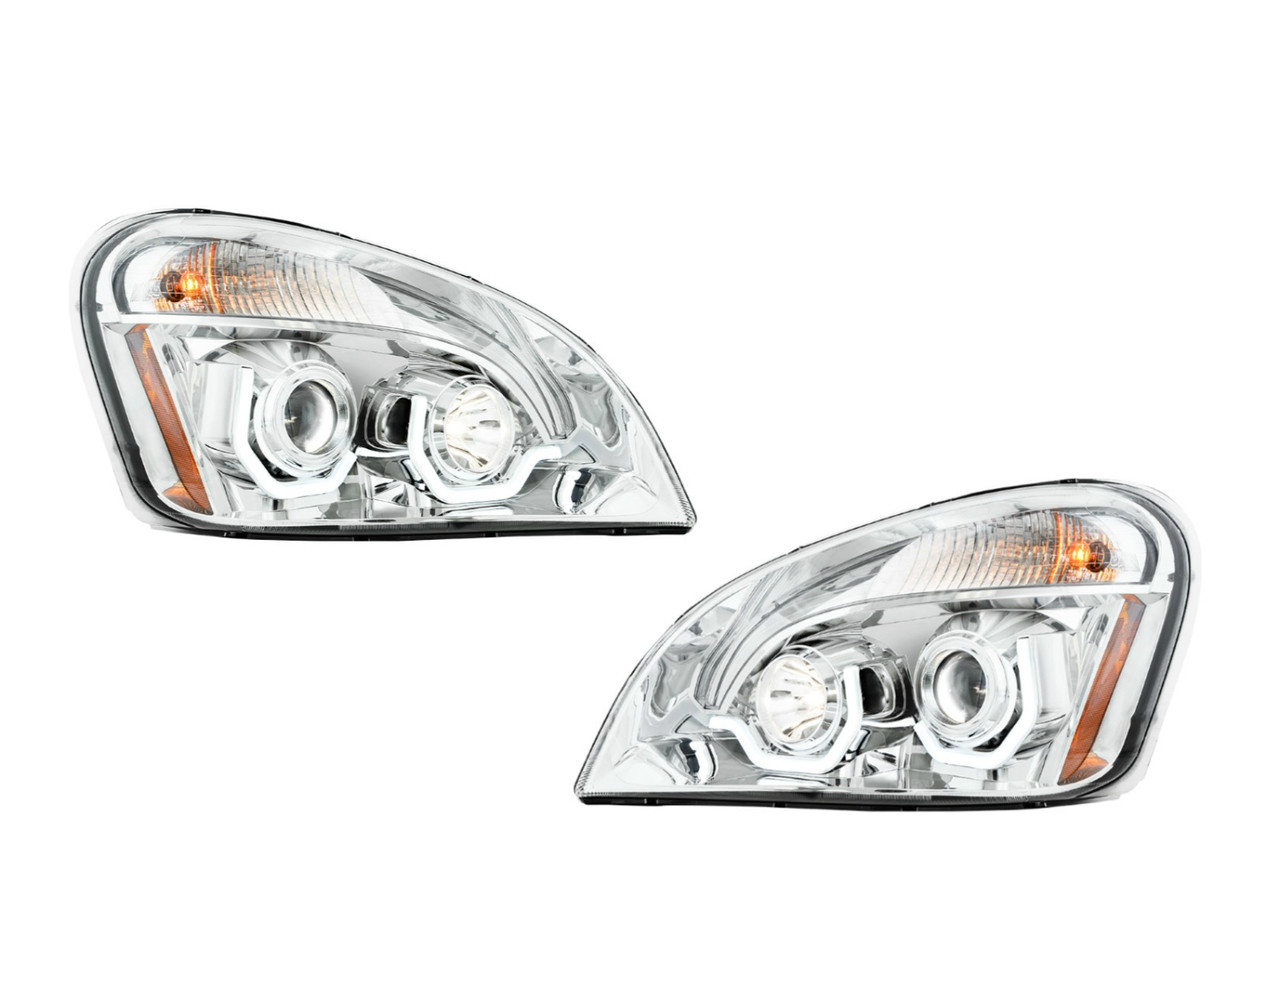 freightliner columbia projection headlight with led running light - chrome